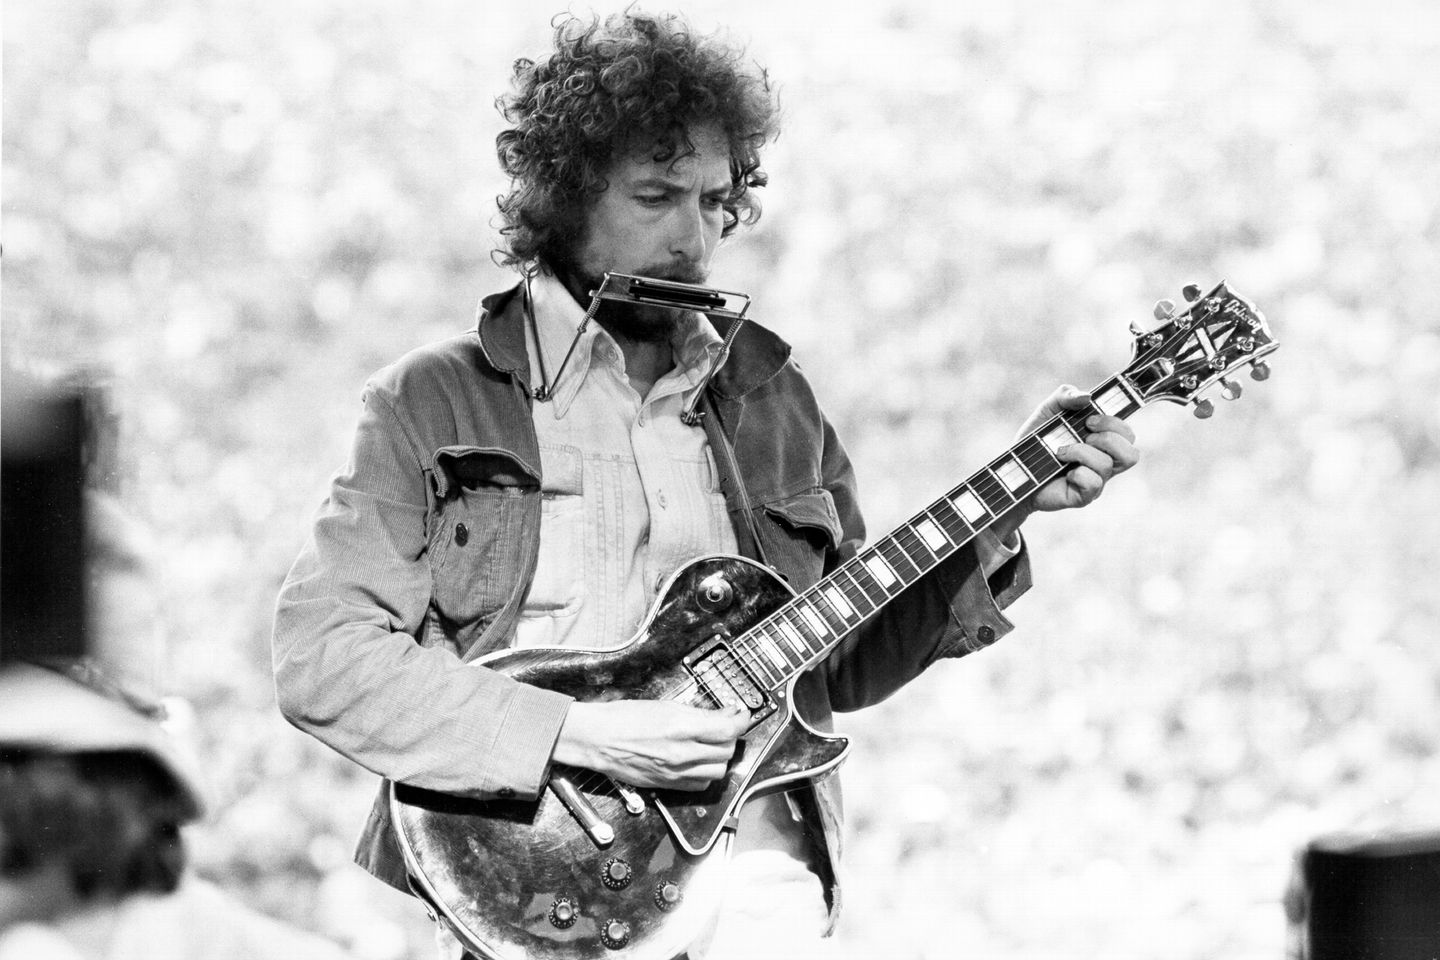 Bob Dylan performs at Kezar Stadium in San Francisco, California, March 23, 1975.   Alvan Meyerowitz/Michael Ochs Archives/Getty Images